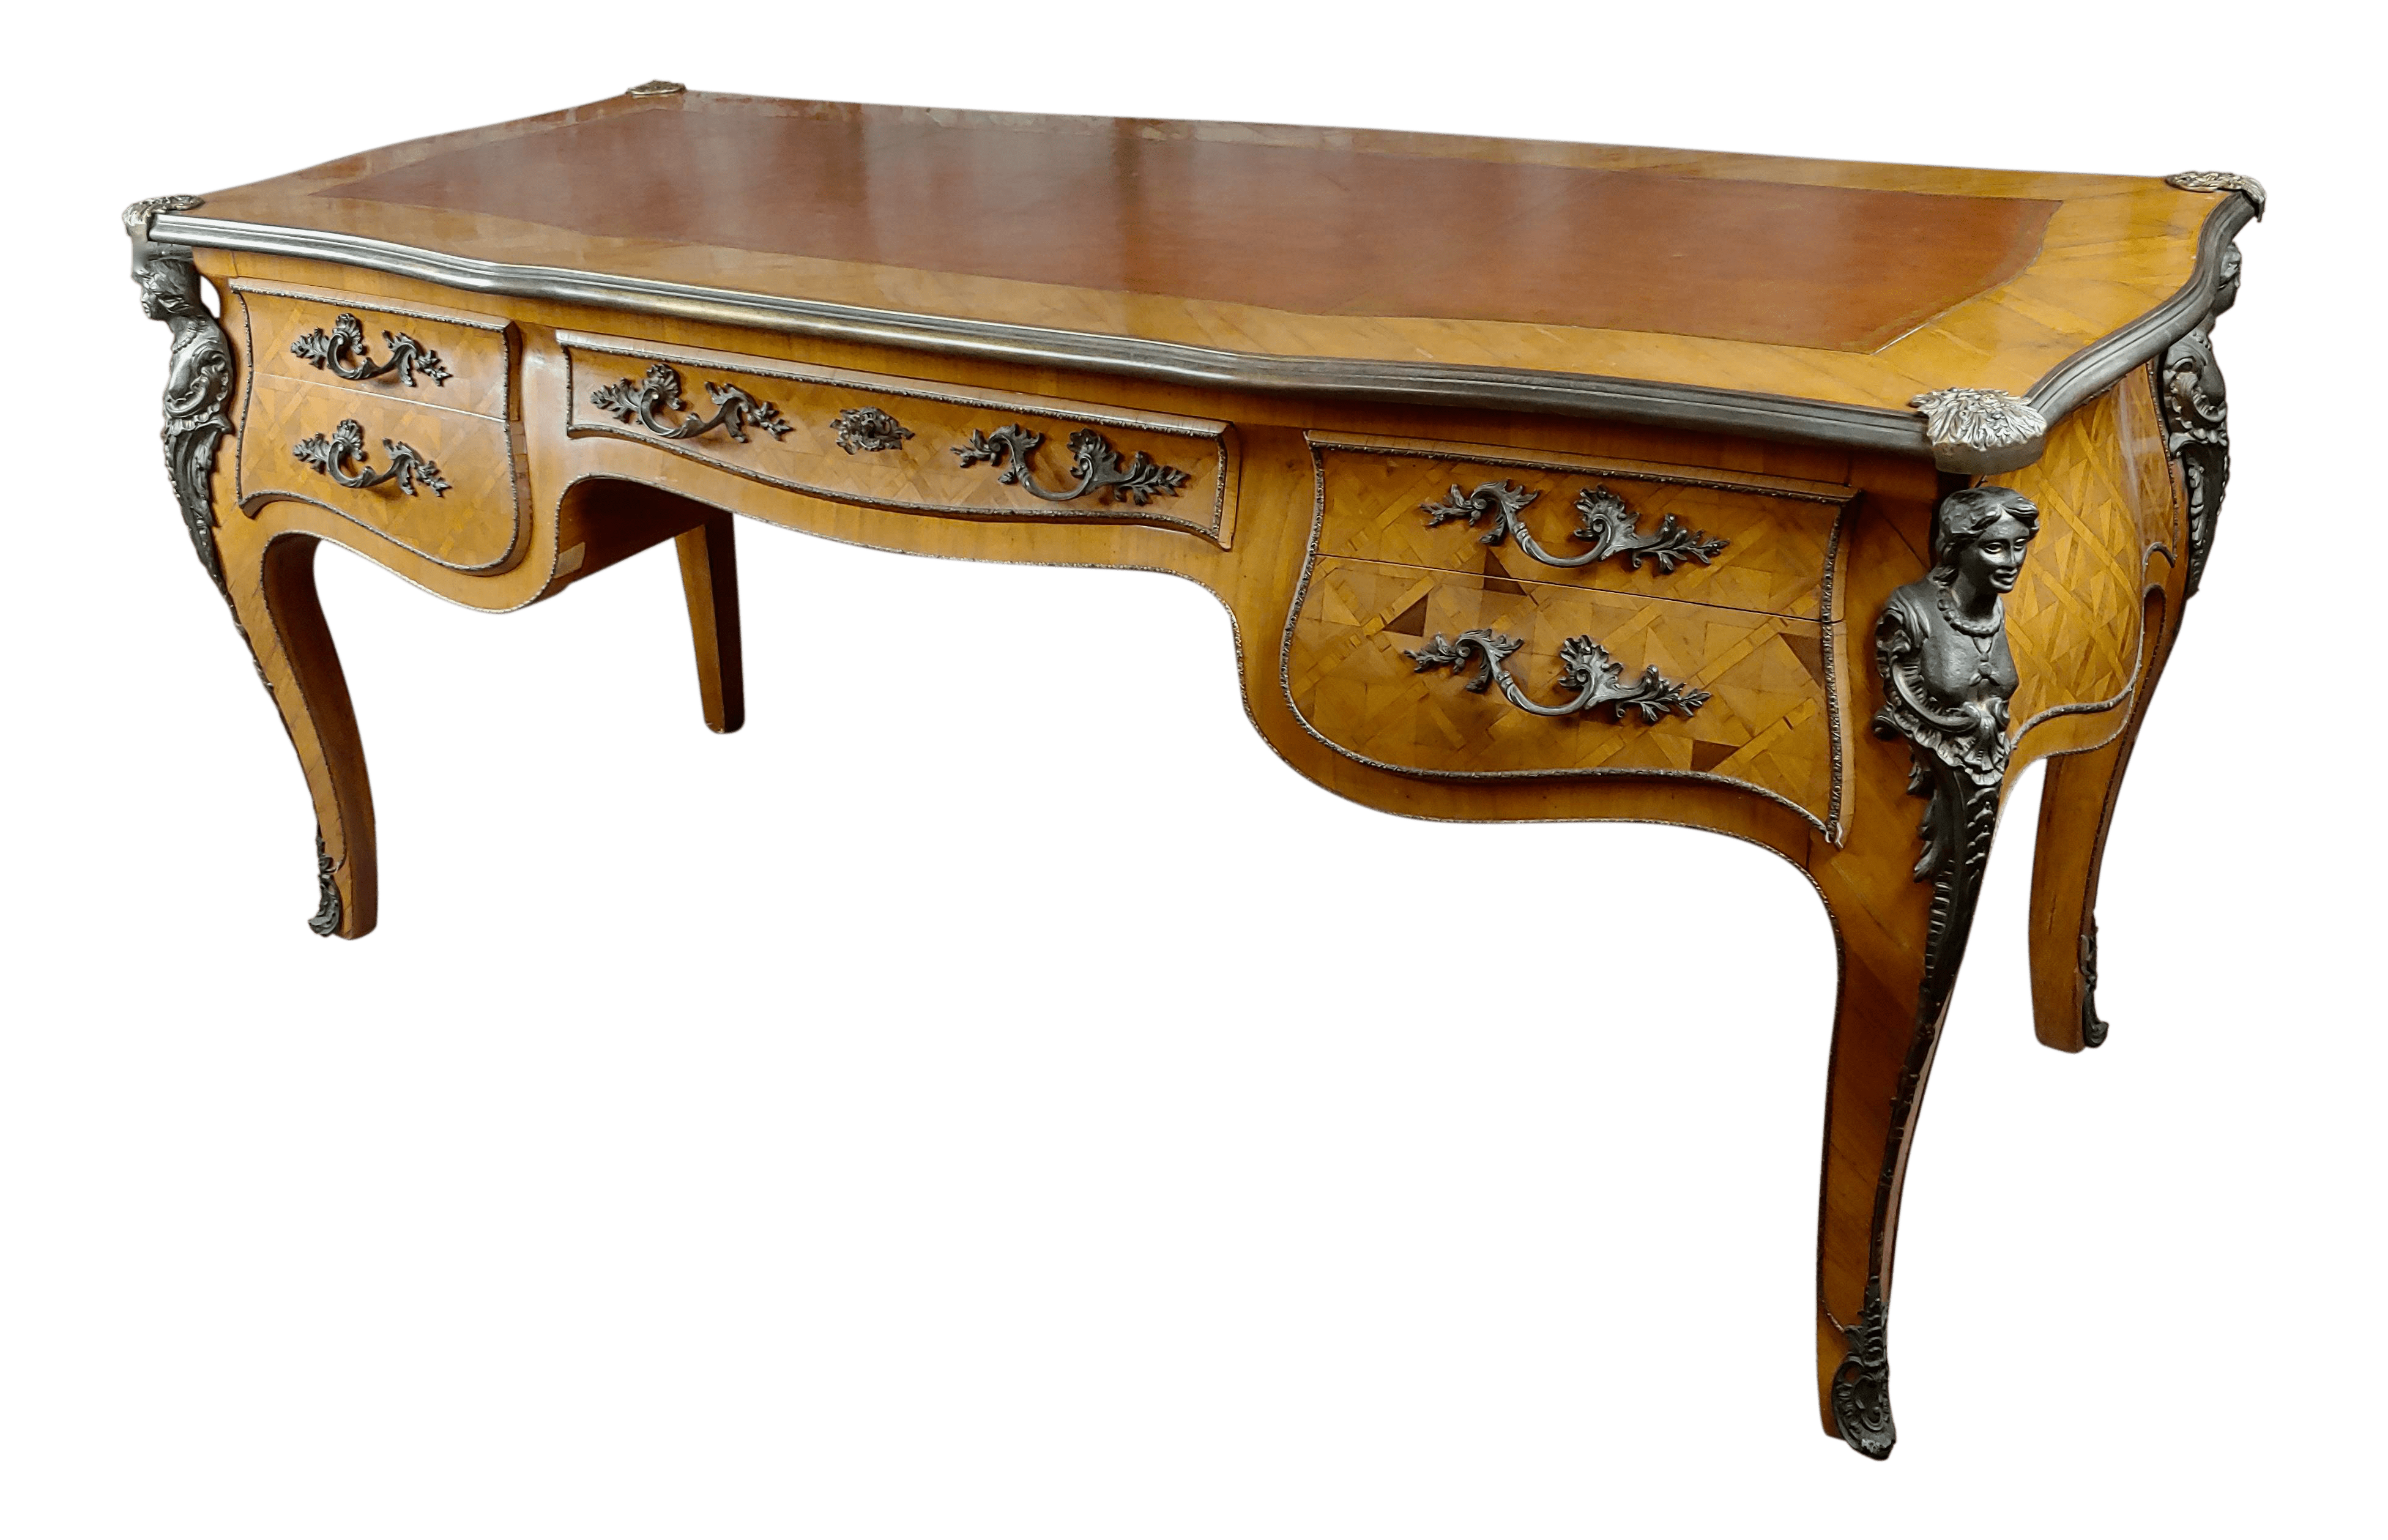 Table Bureau Louis Xv Bureau Plat Bronze Mounted Inlaid Parquetry And Leather Top Desk